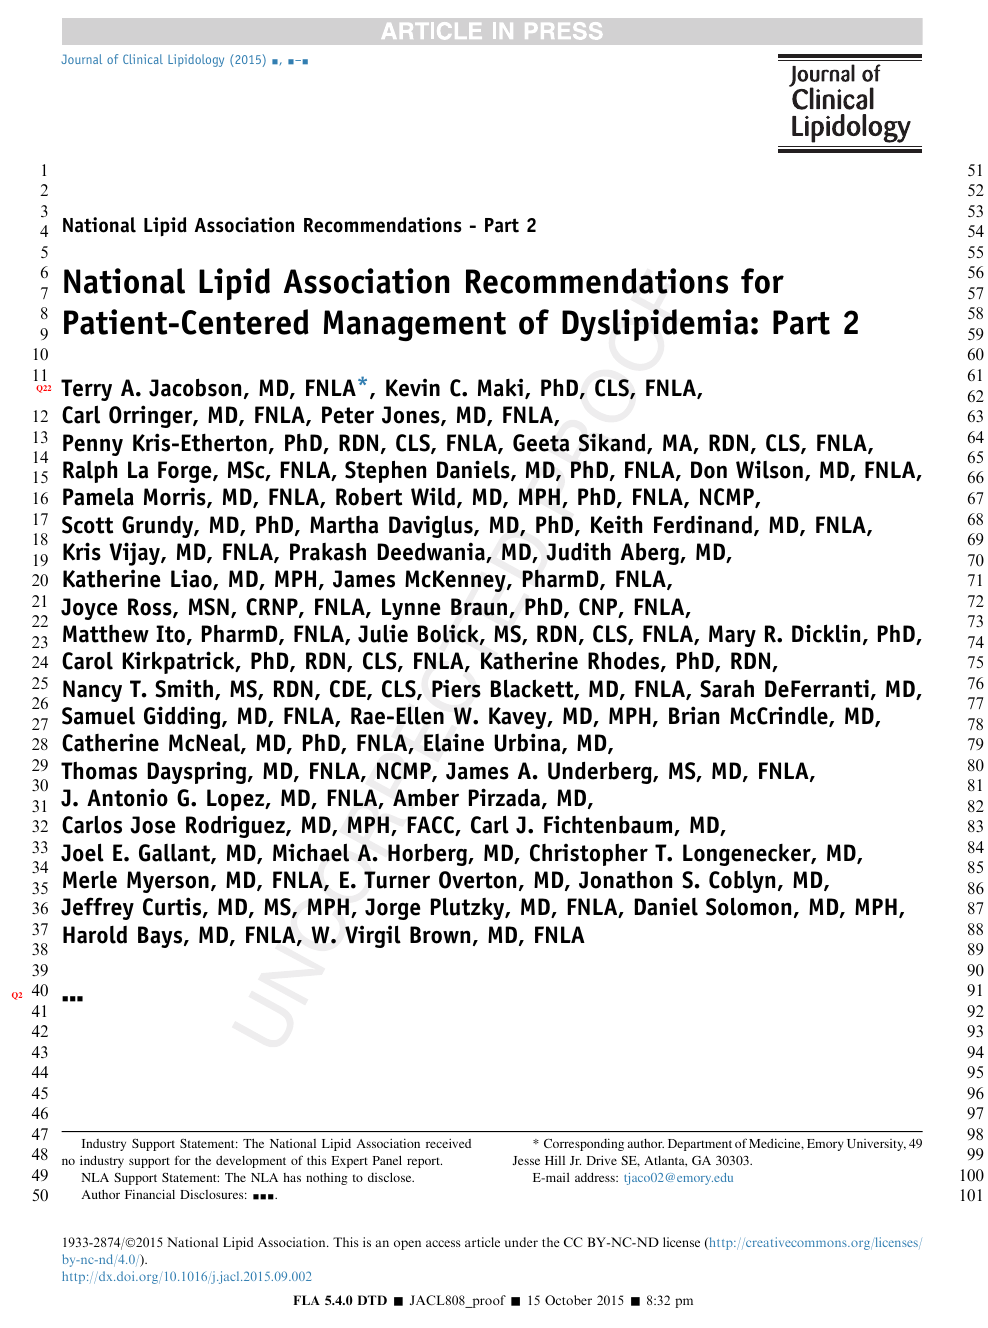 National Lipid Association Recommendations for Patient